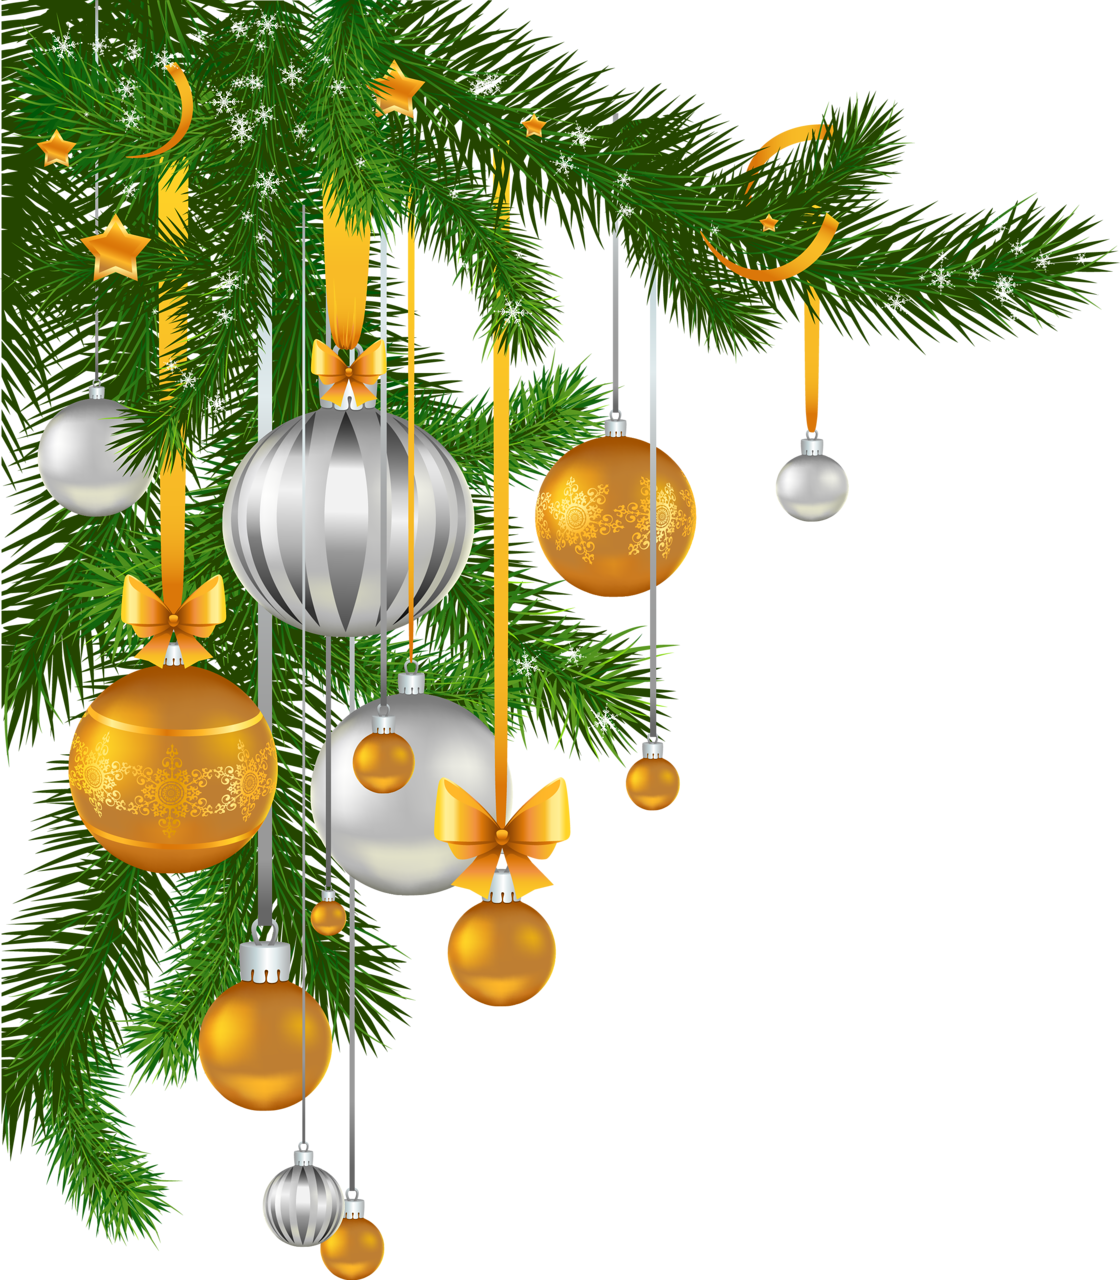 Christmas background png. Images free